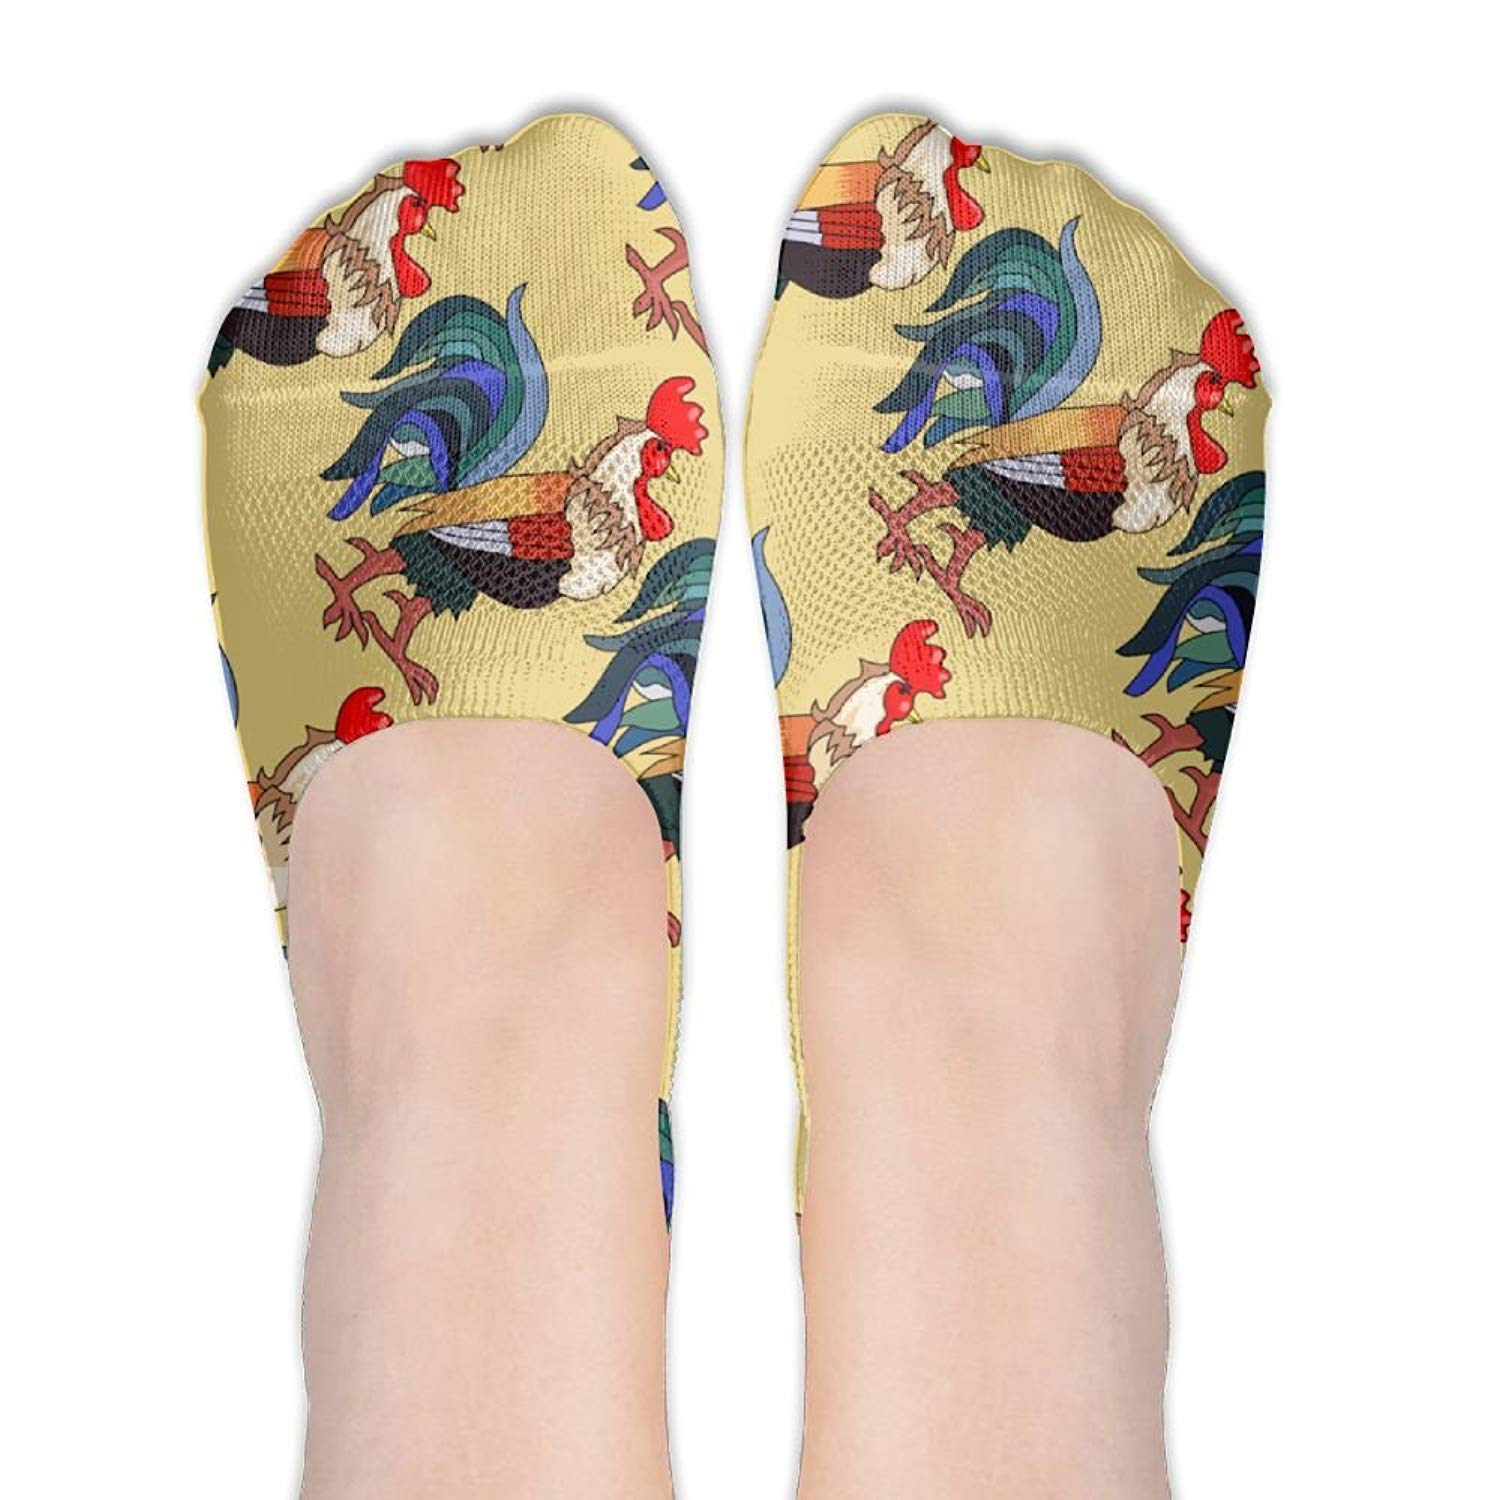 ed3d43157 Get Quotations · Girls Chicken Animal Socks For Loafers Ankle Length Socks  Cool Printed Non Slip Socks For Lady